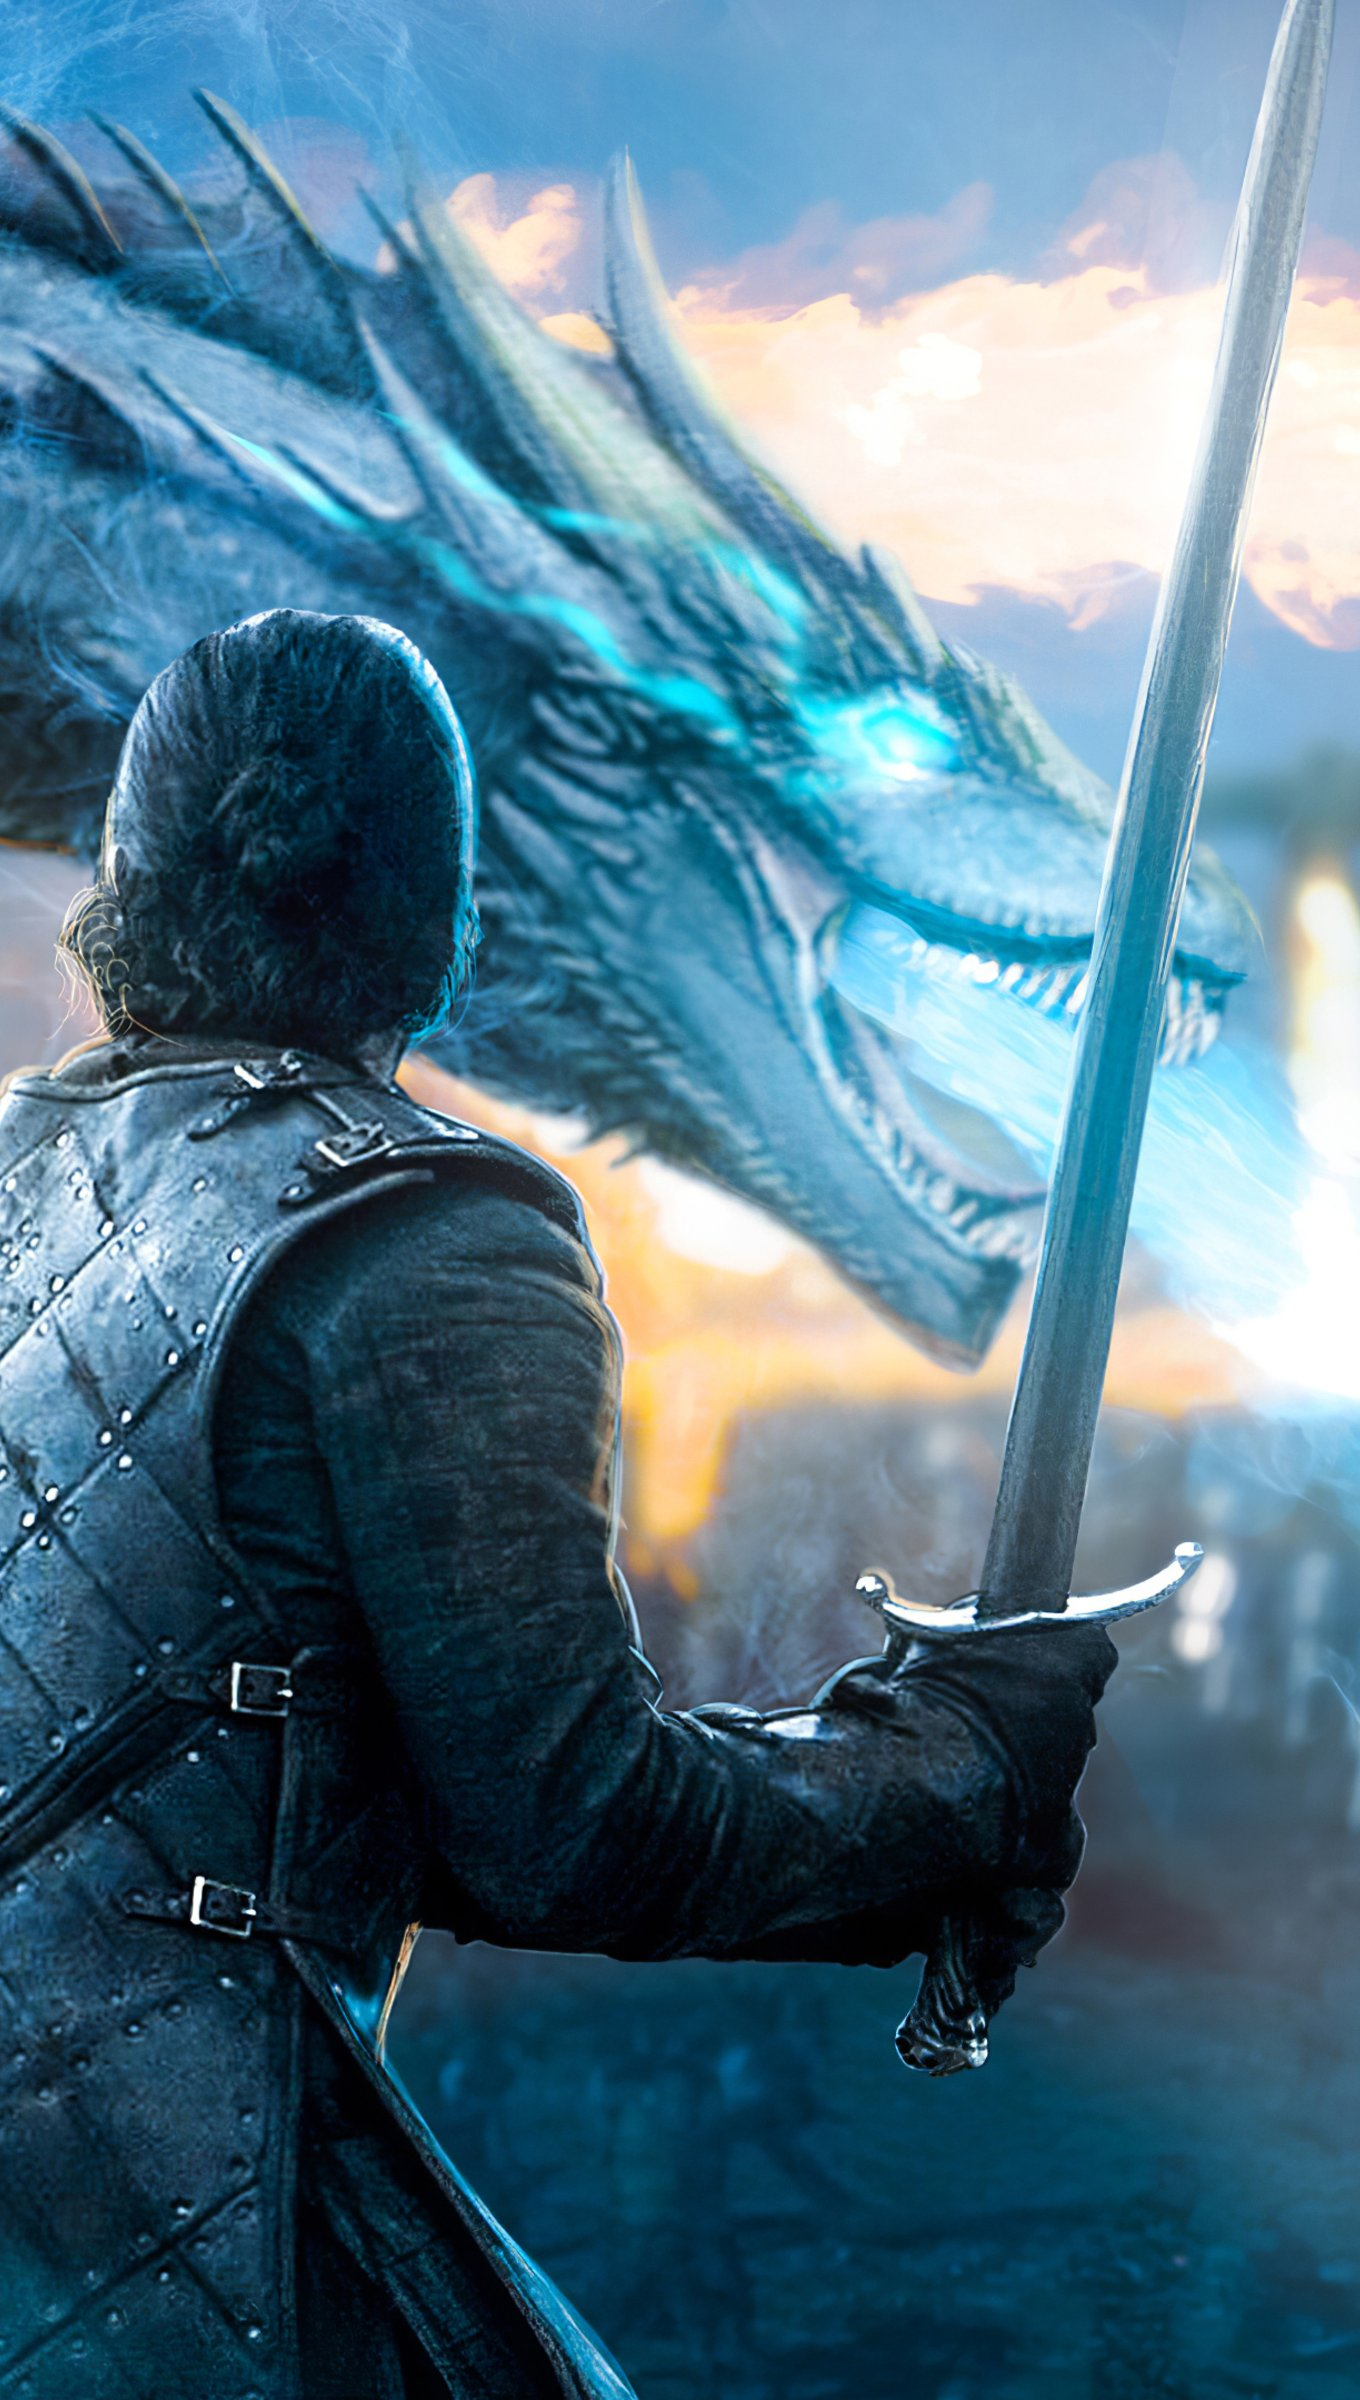 Wallpaper Jon Snow with dragon from Game of thrones Vertical